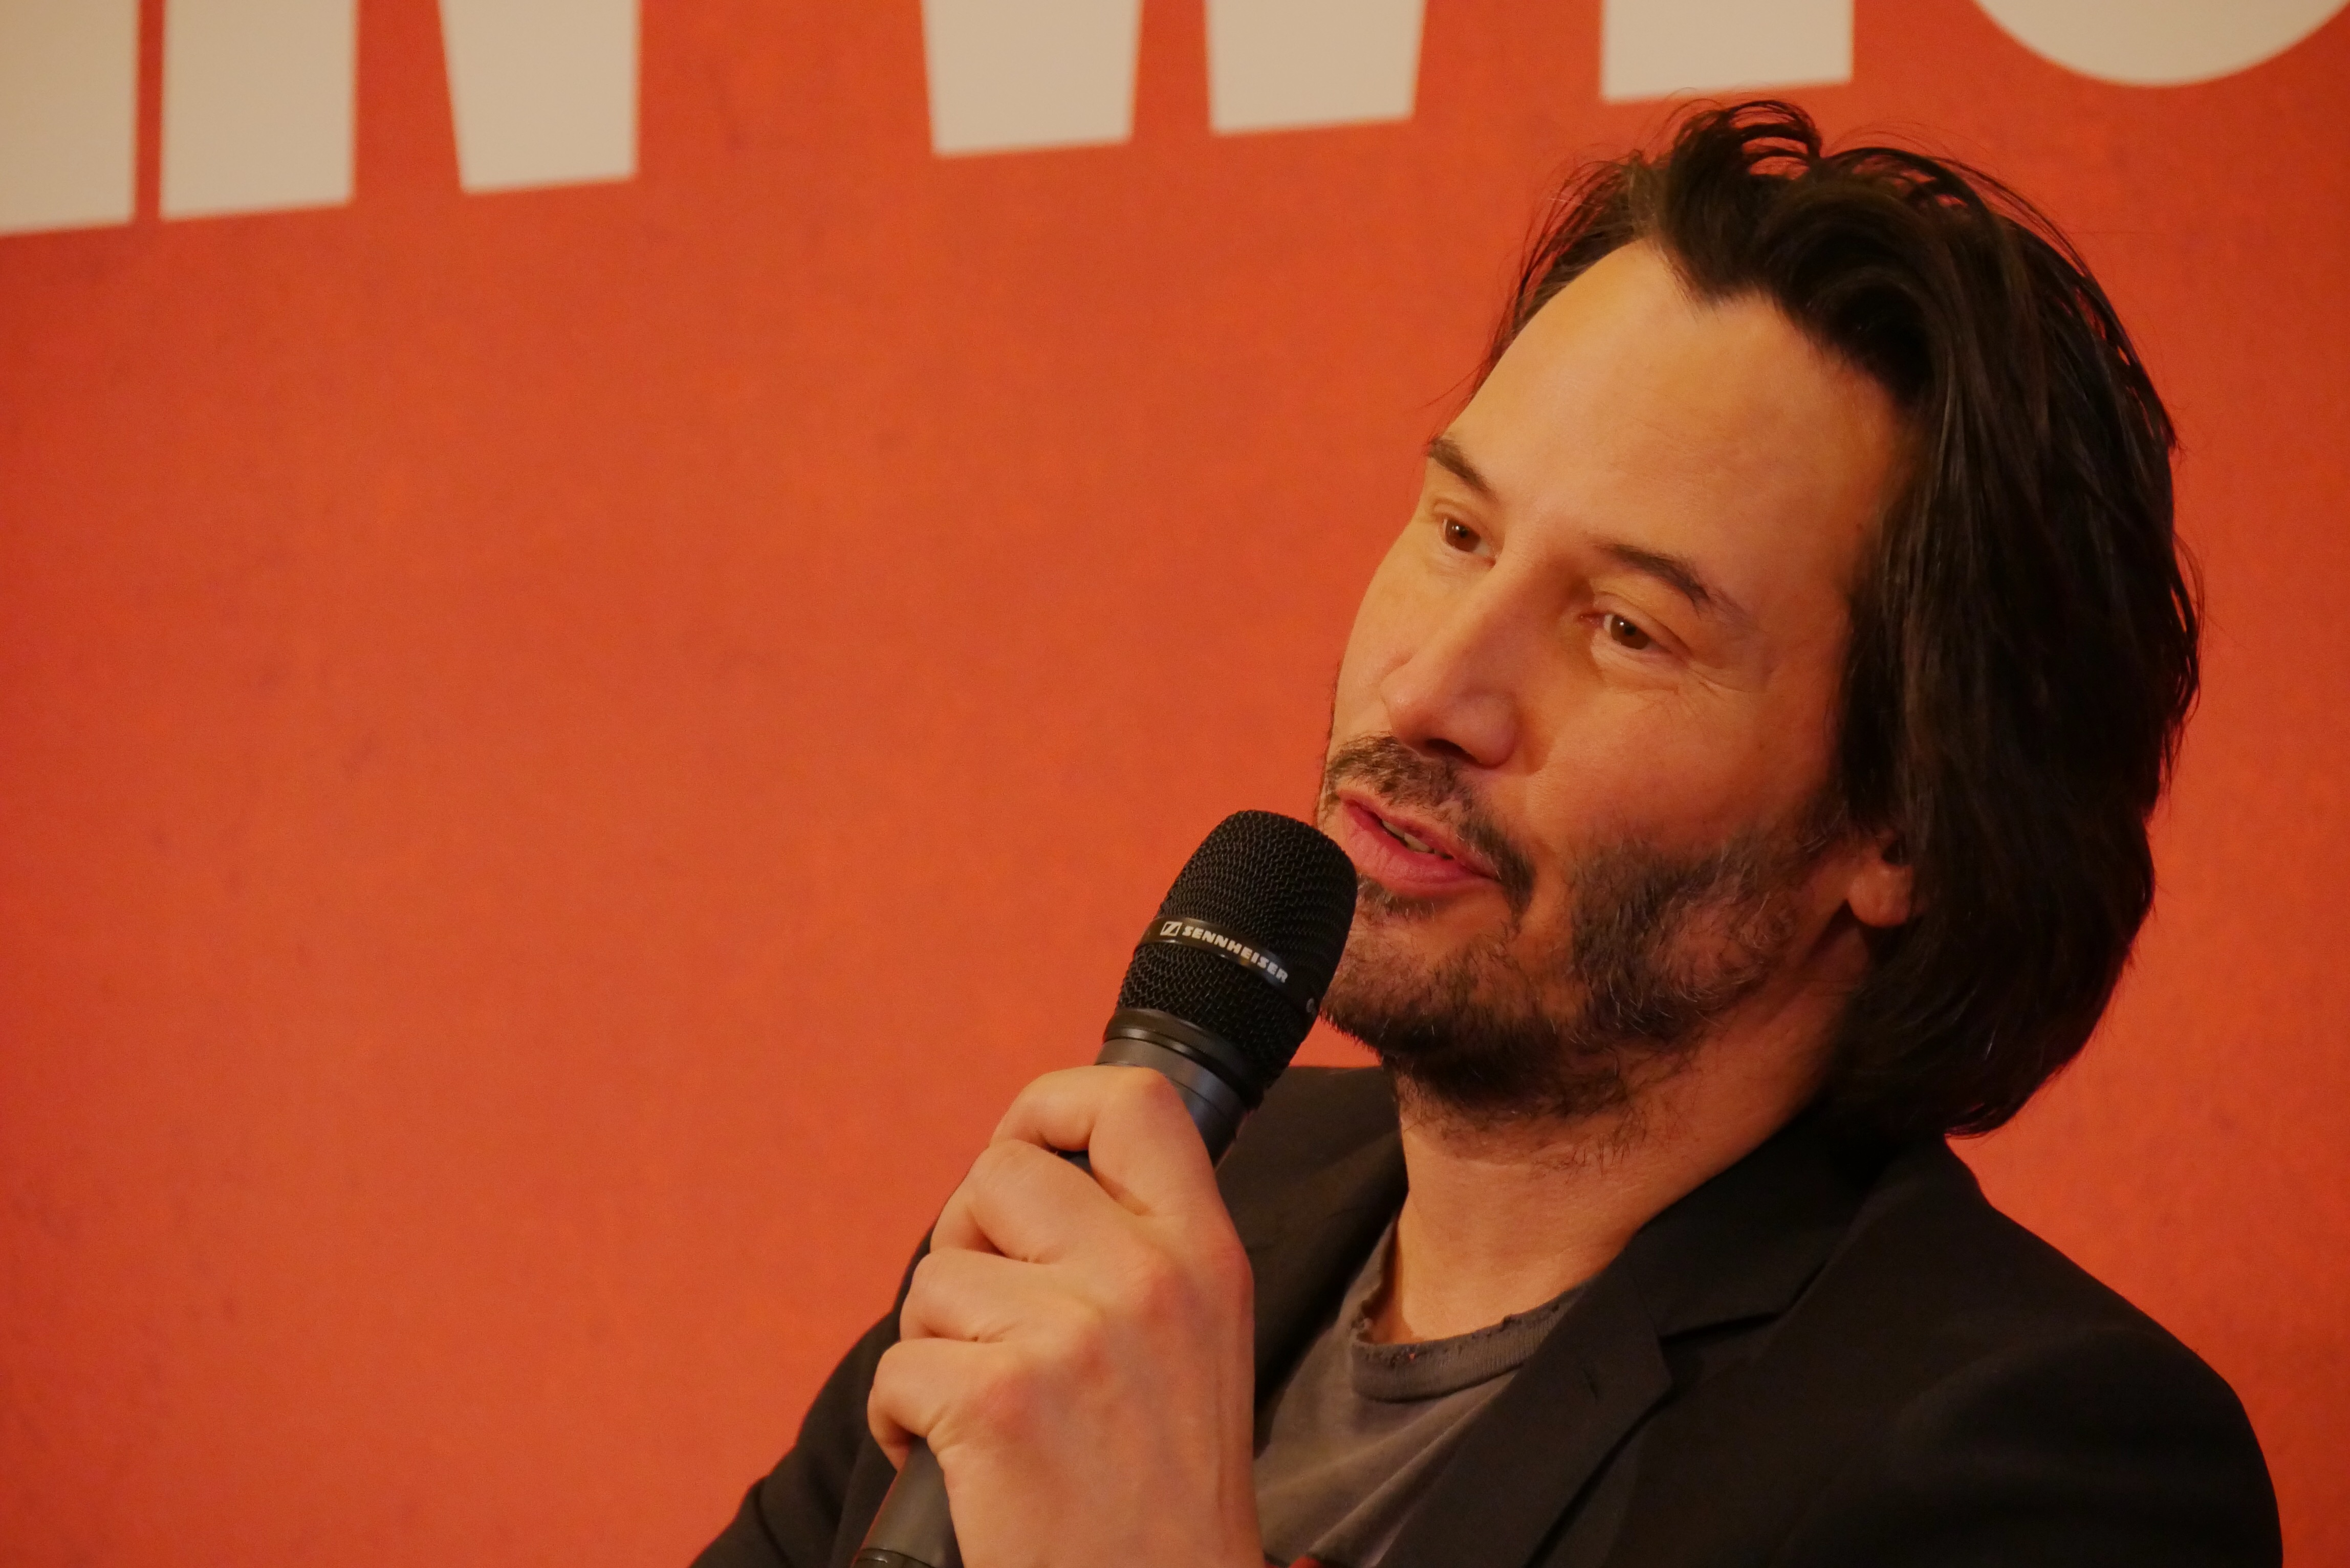 Keanu Reeves press conference presse film John Wick 2 Chad Stahelski The Ritz Paris portrait photo usofparis blog